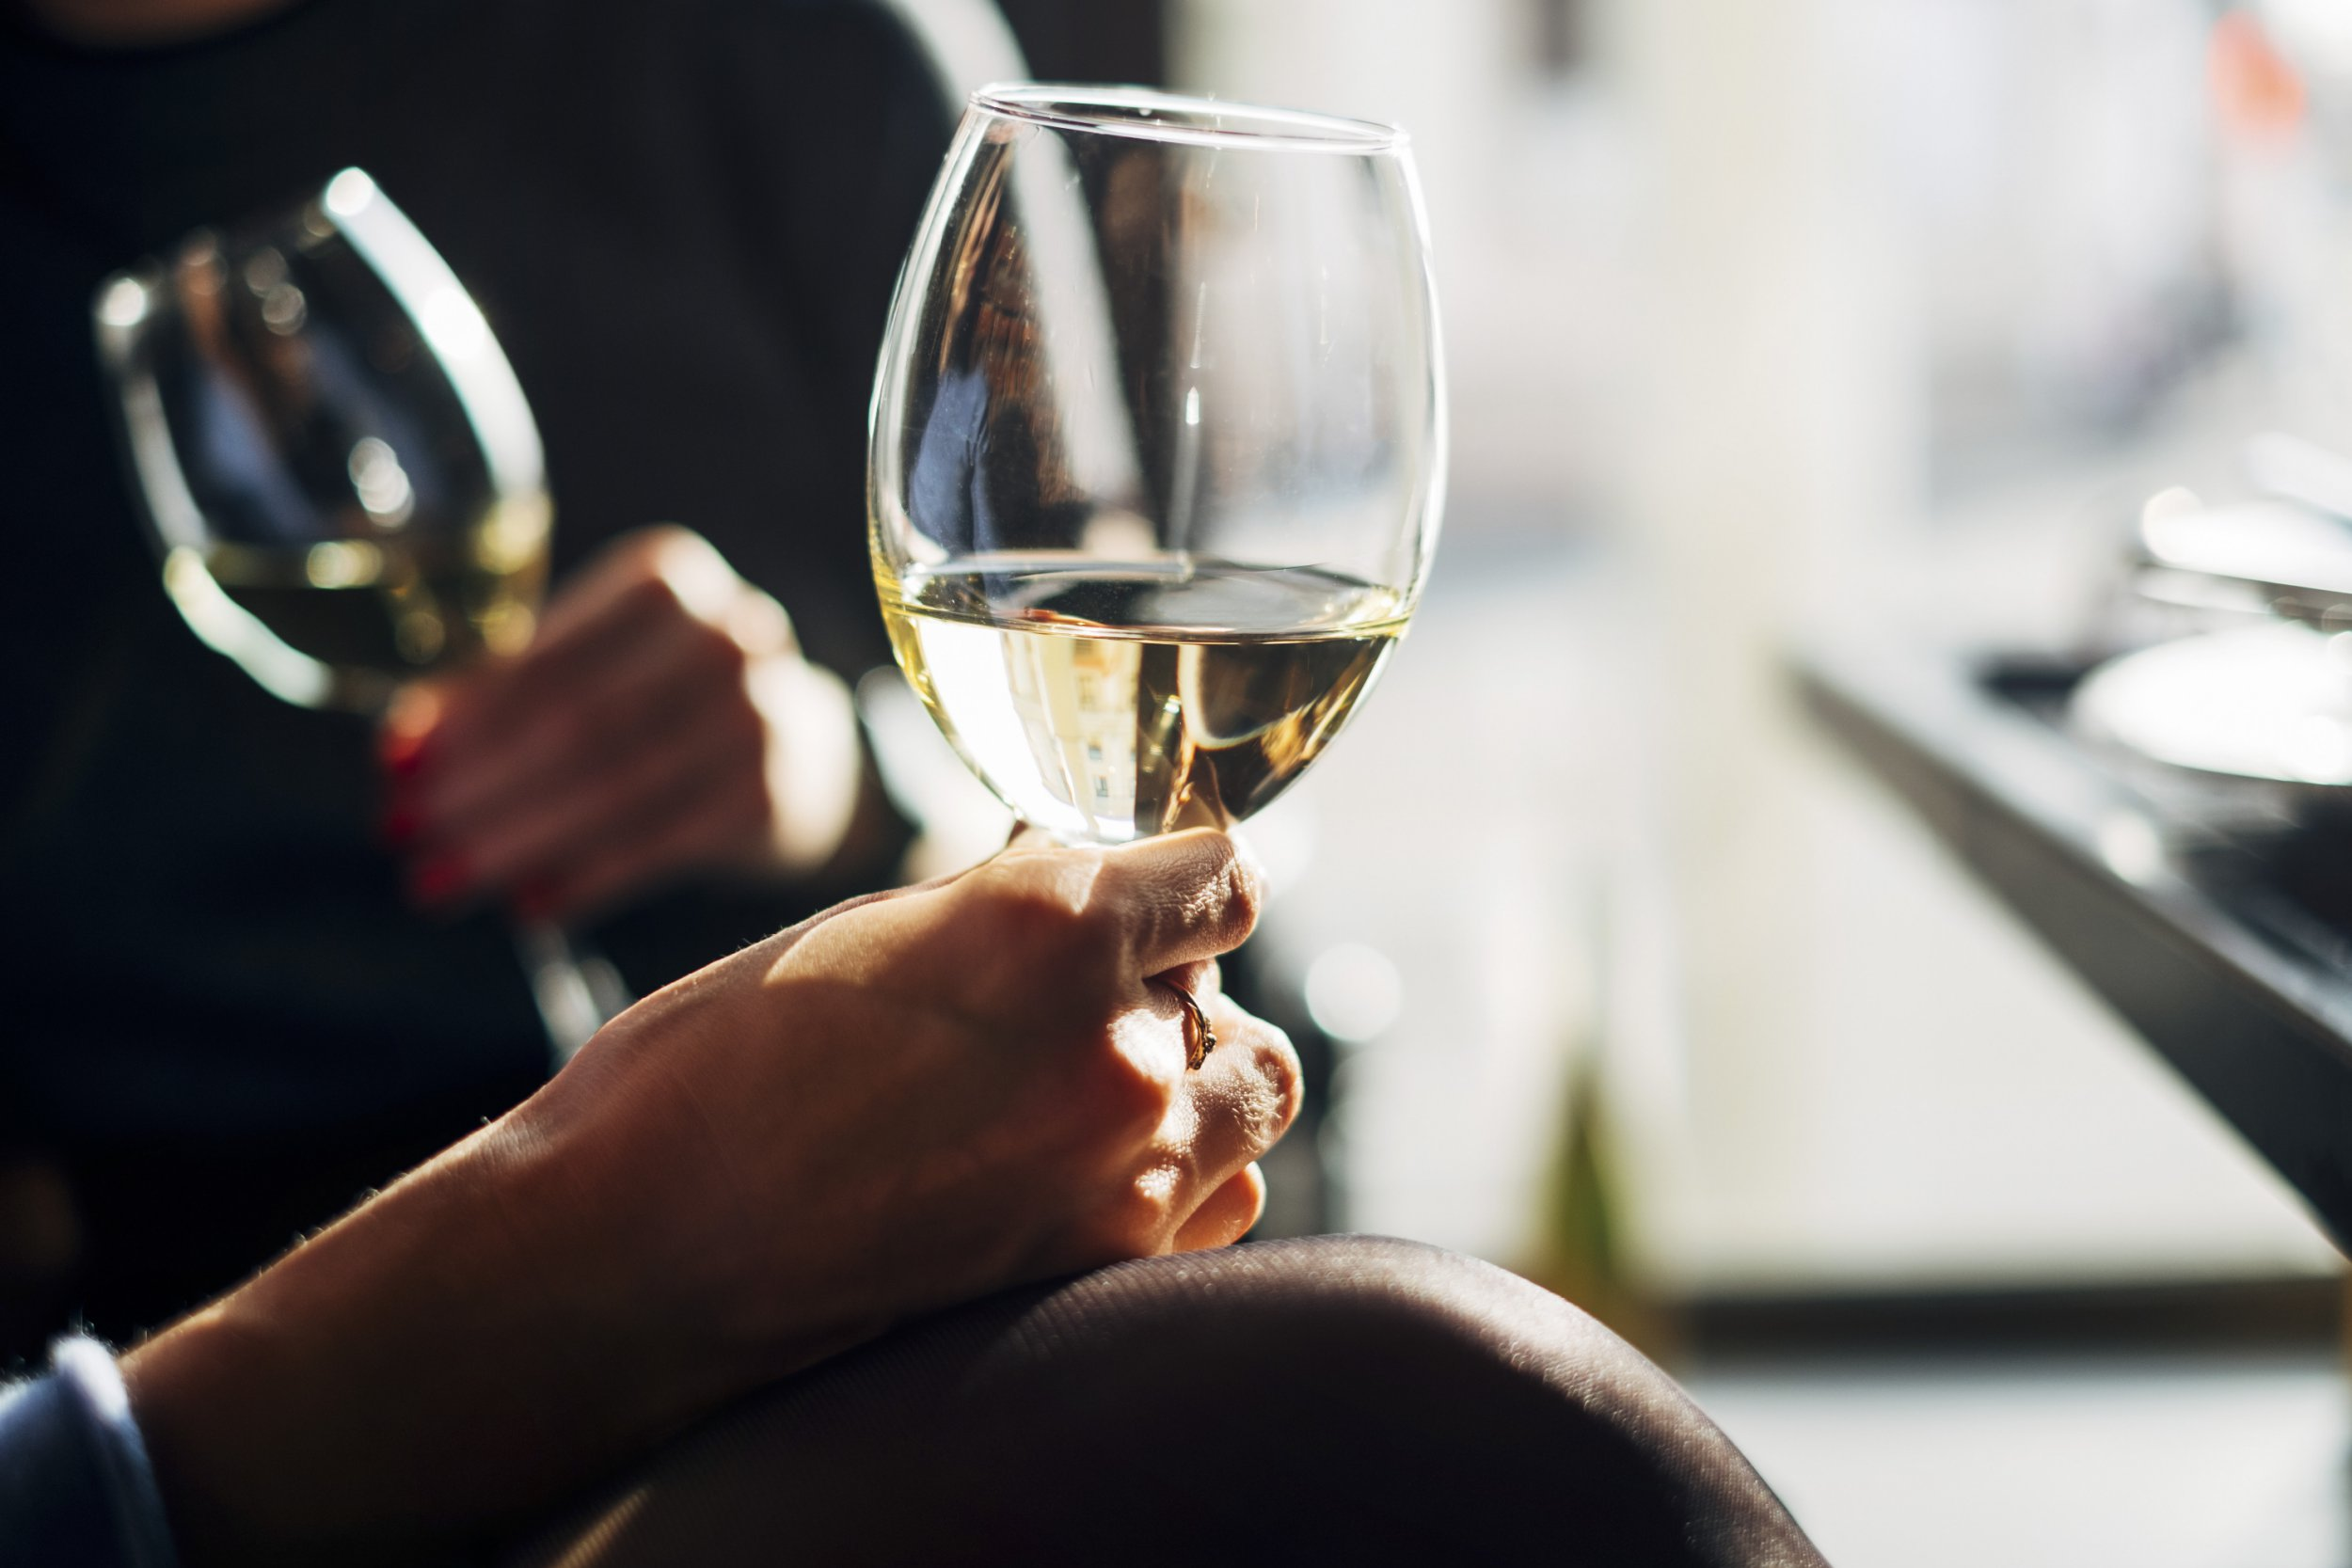 Shocking scans reveal damage two glasses of wine can have on your heart